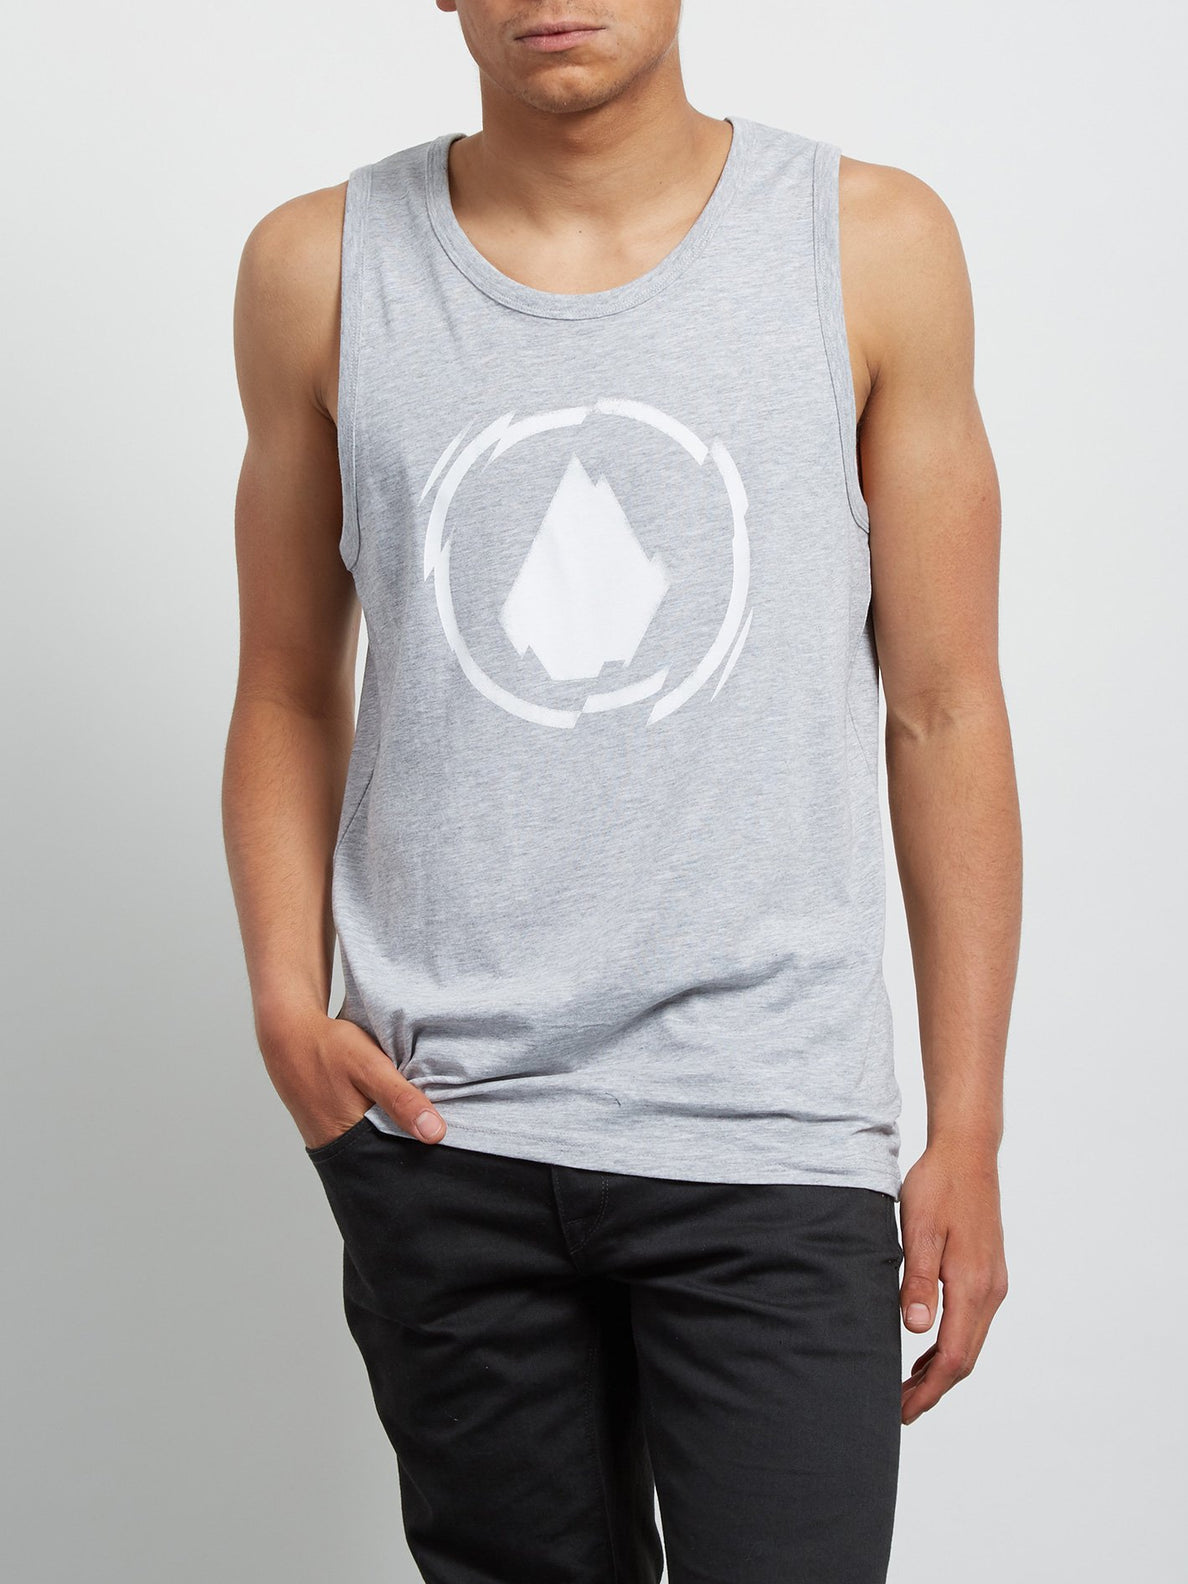 Shatter Tank - Heather Grey